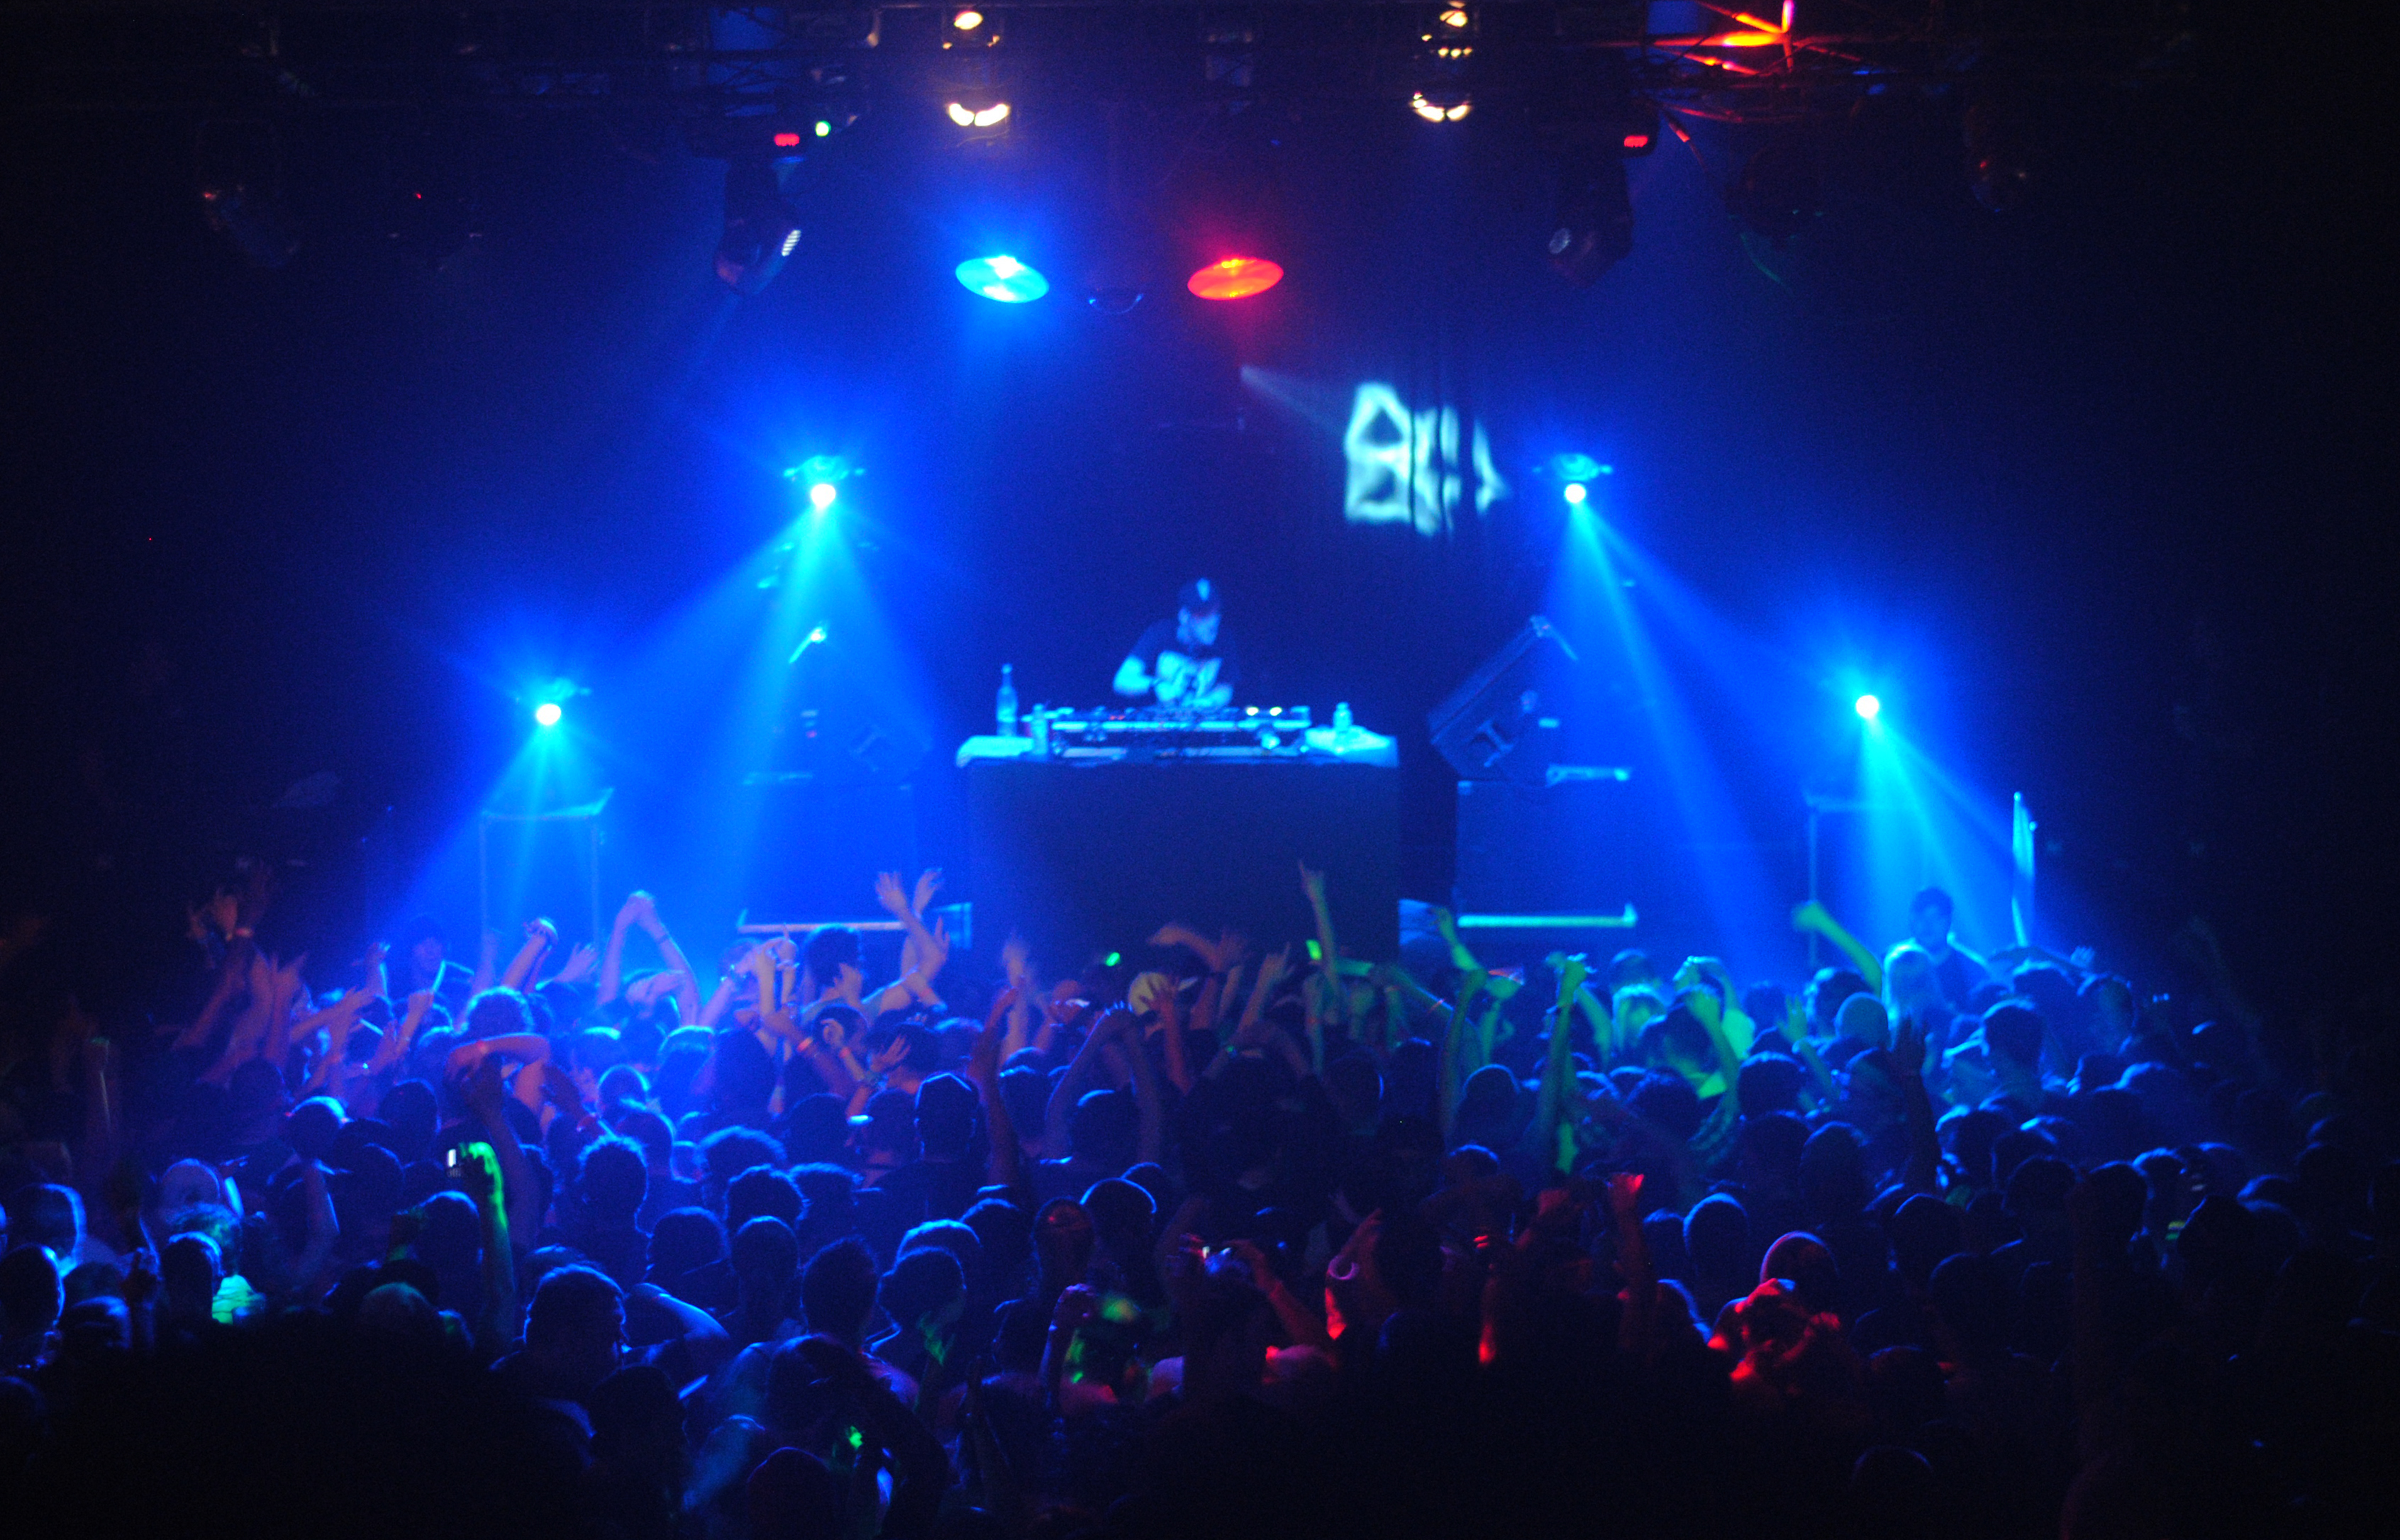 Chugging ...  sc 1 st  acityinthemidwest & Rusko @ Canopy Club (Pictures!) 2-26-12 | acityinthemidwest